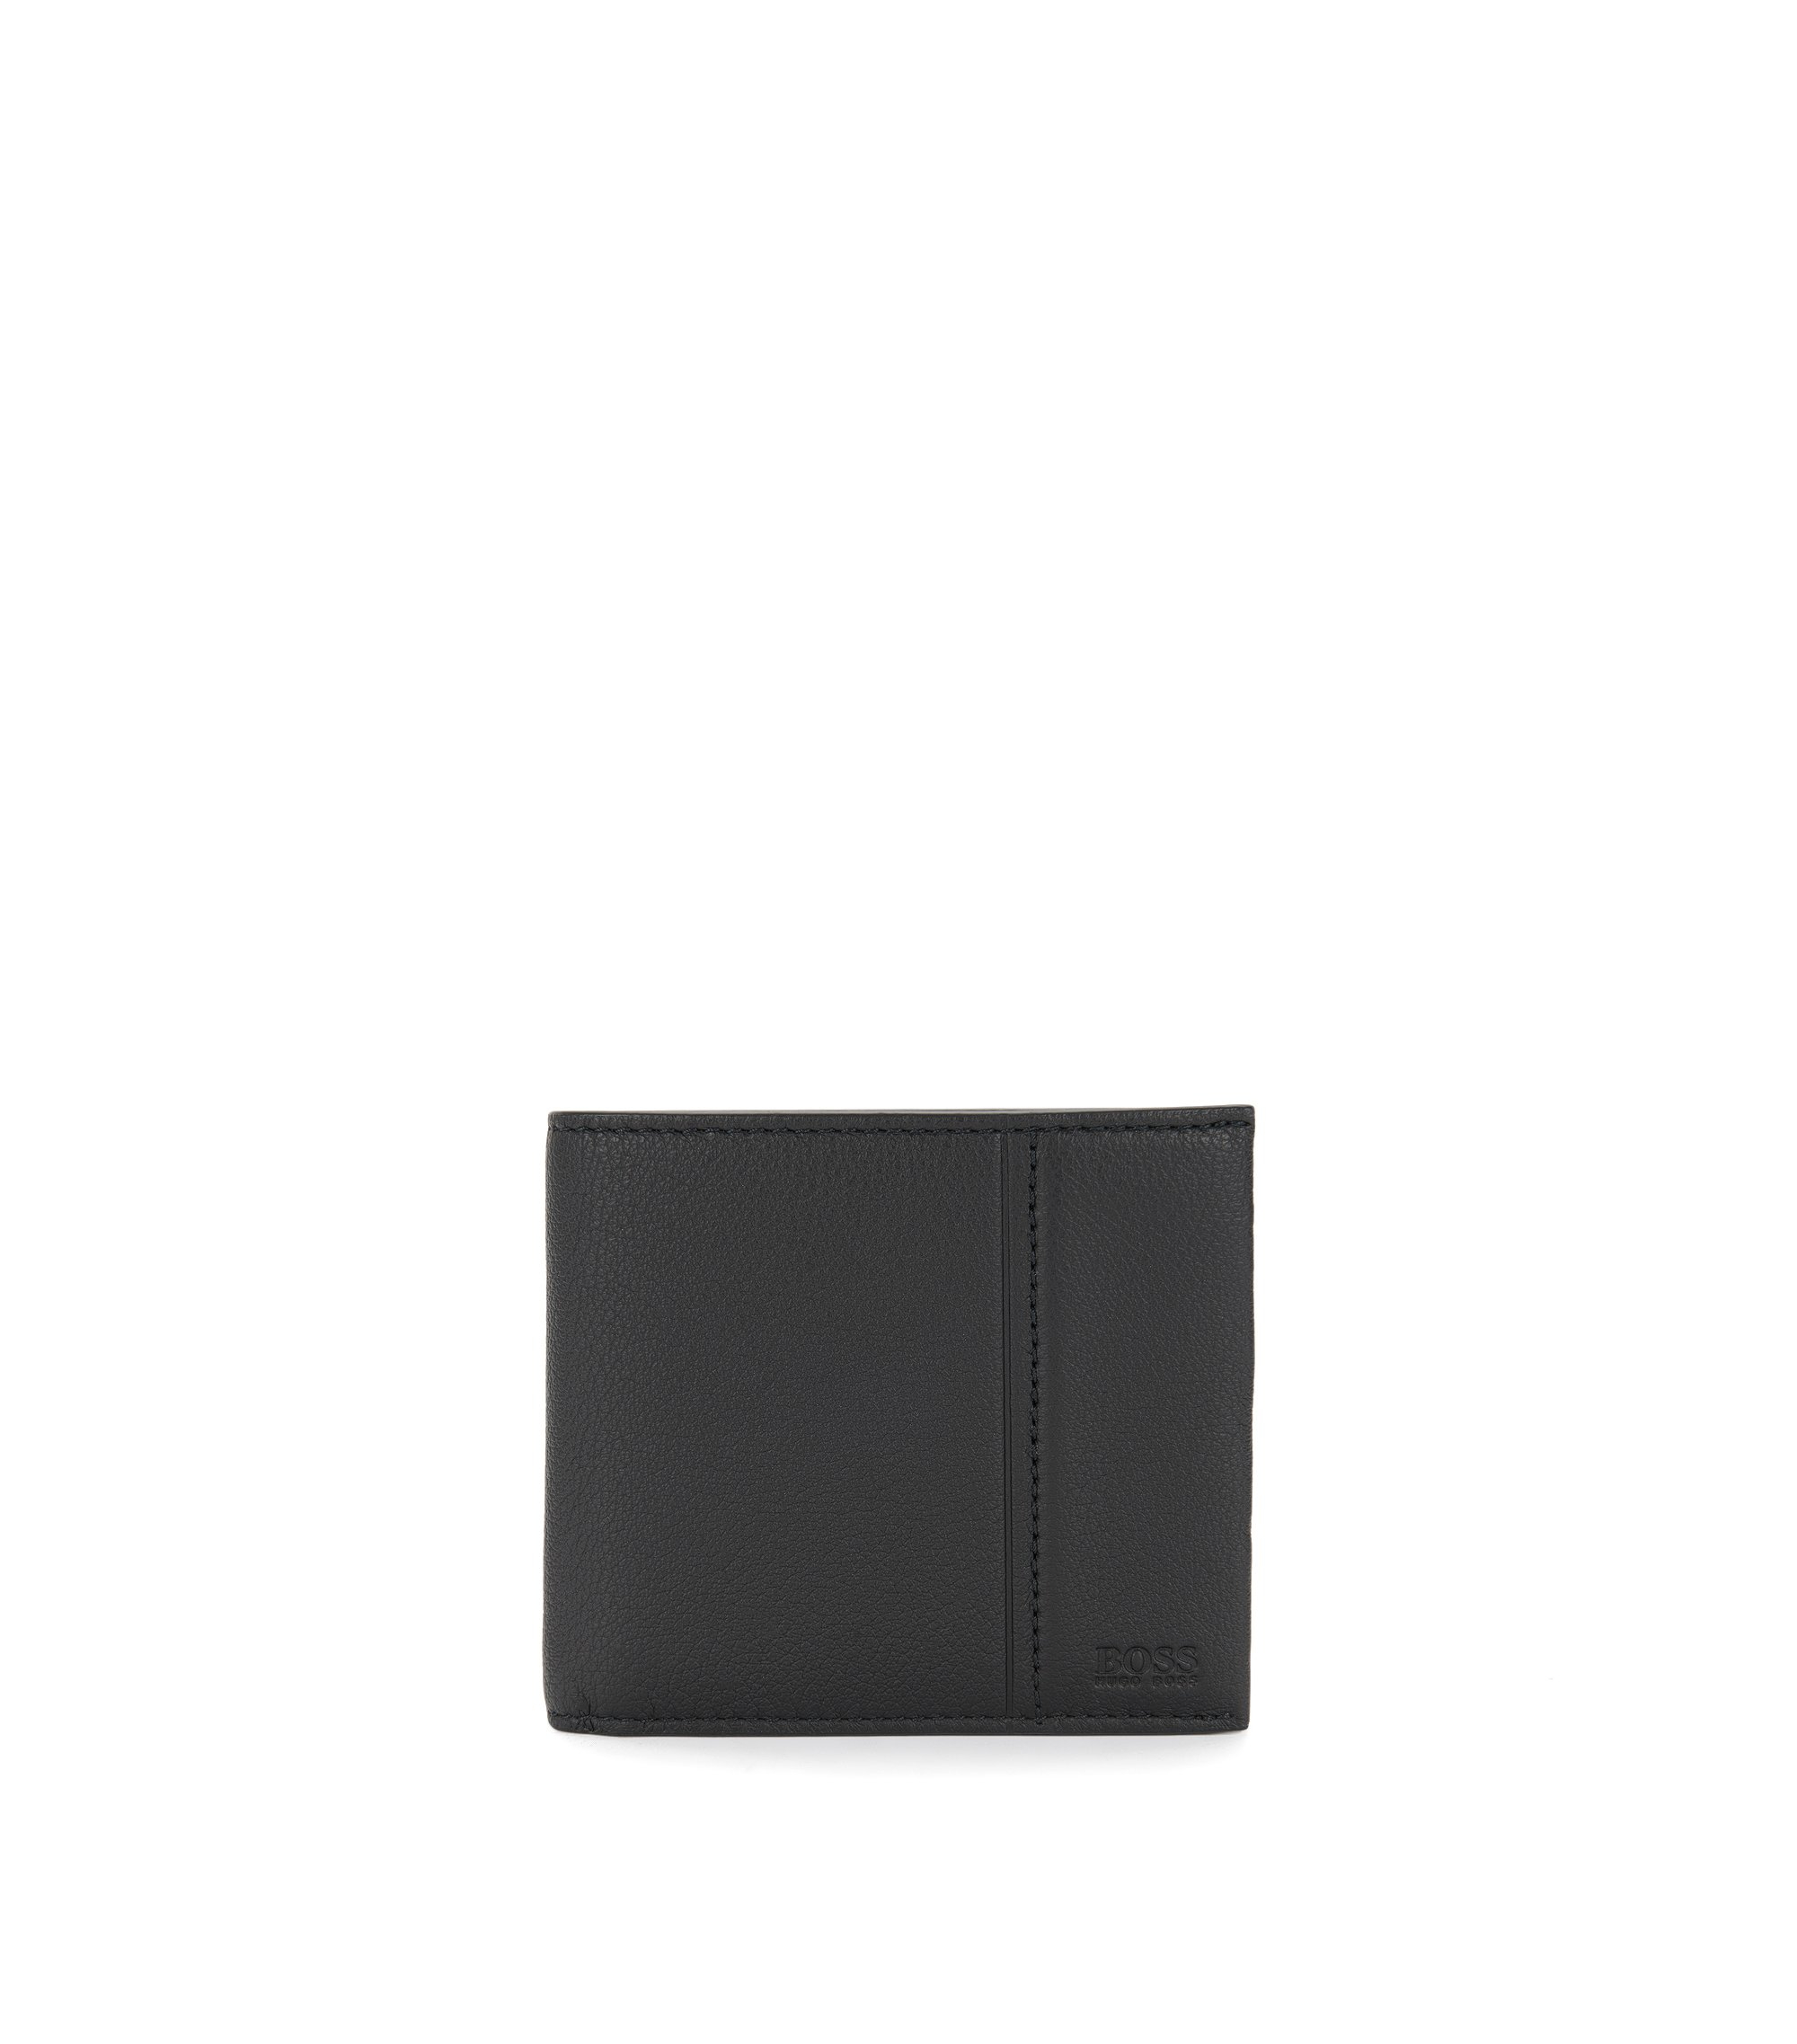 Leather Billfold Wallet | Traveller 4 CC Coin, Black